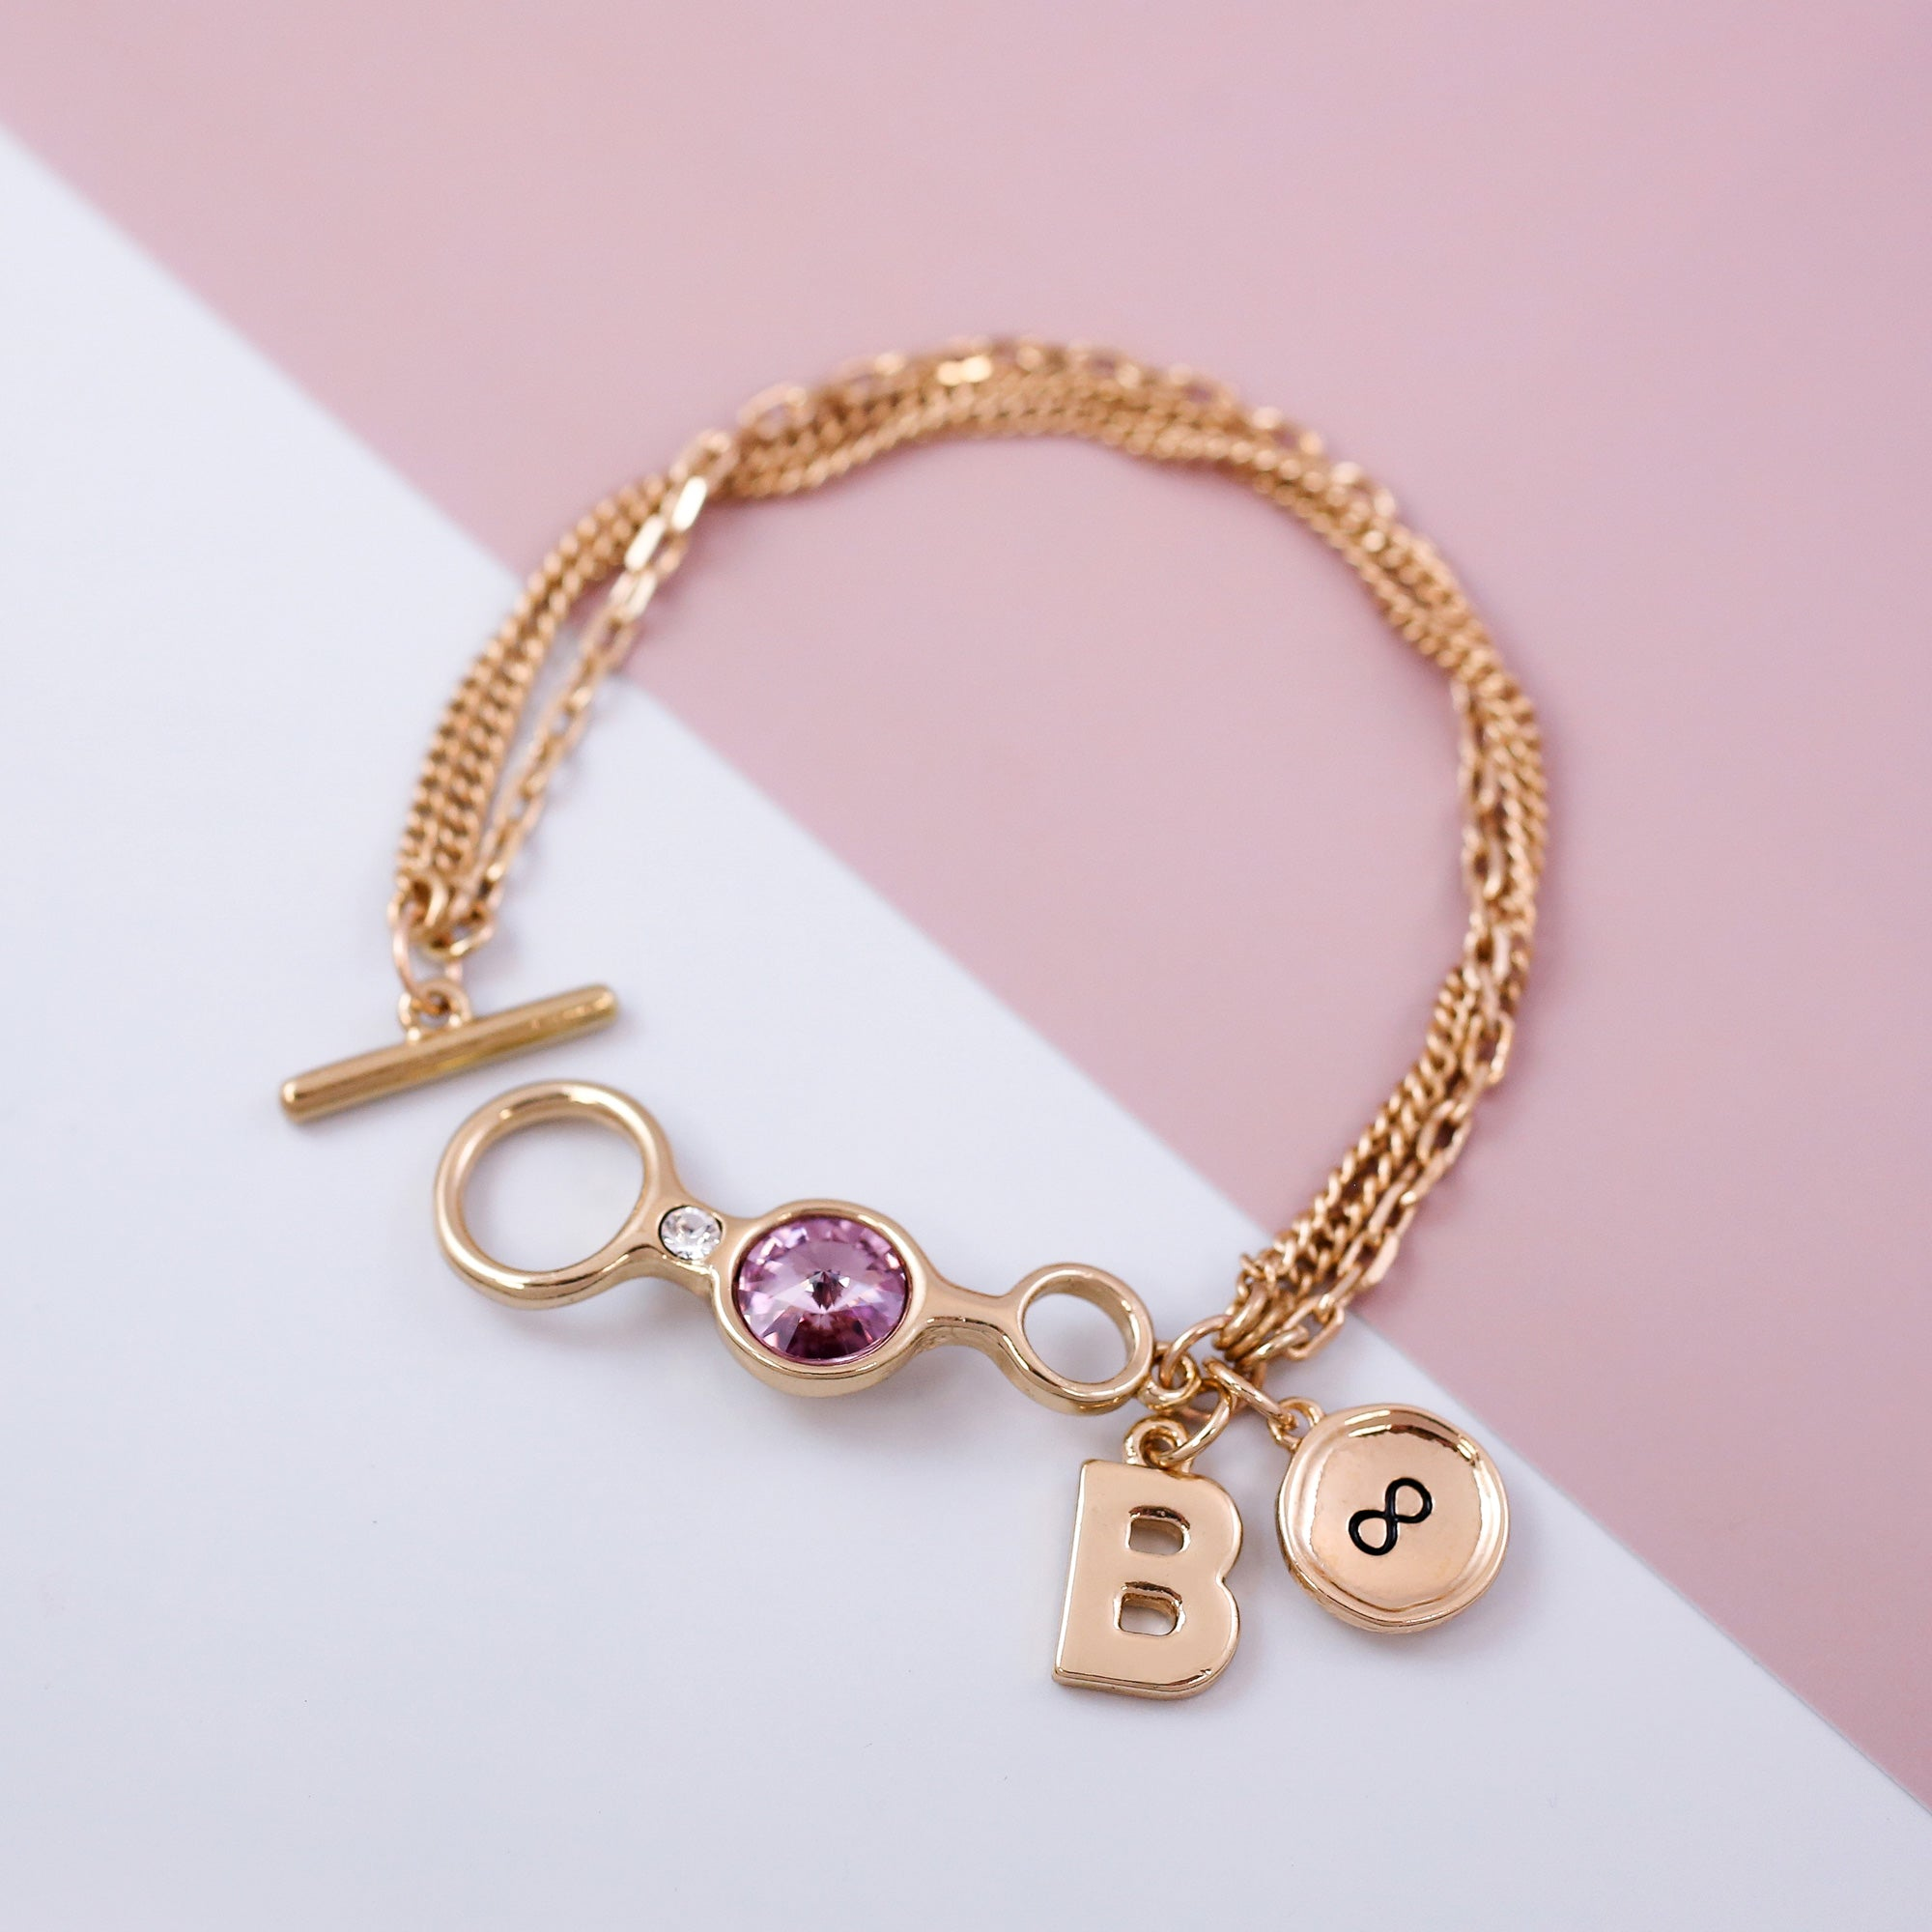 TBar Friendship Bracelet Gold & Light Amethyst